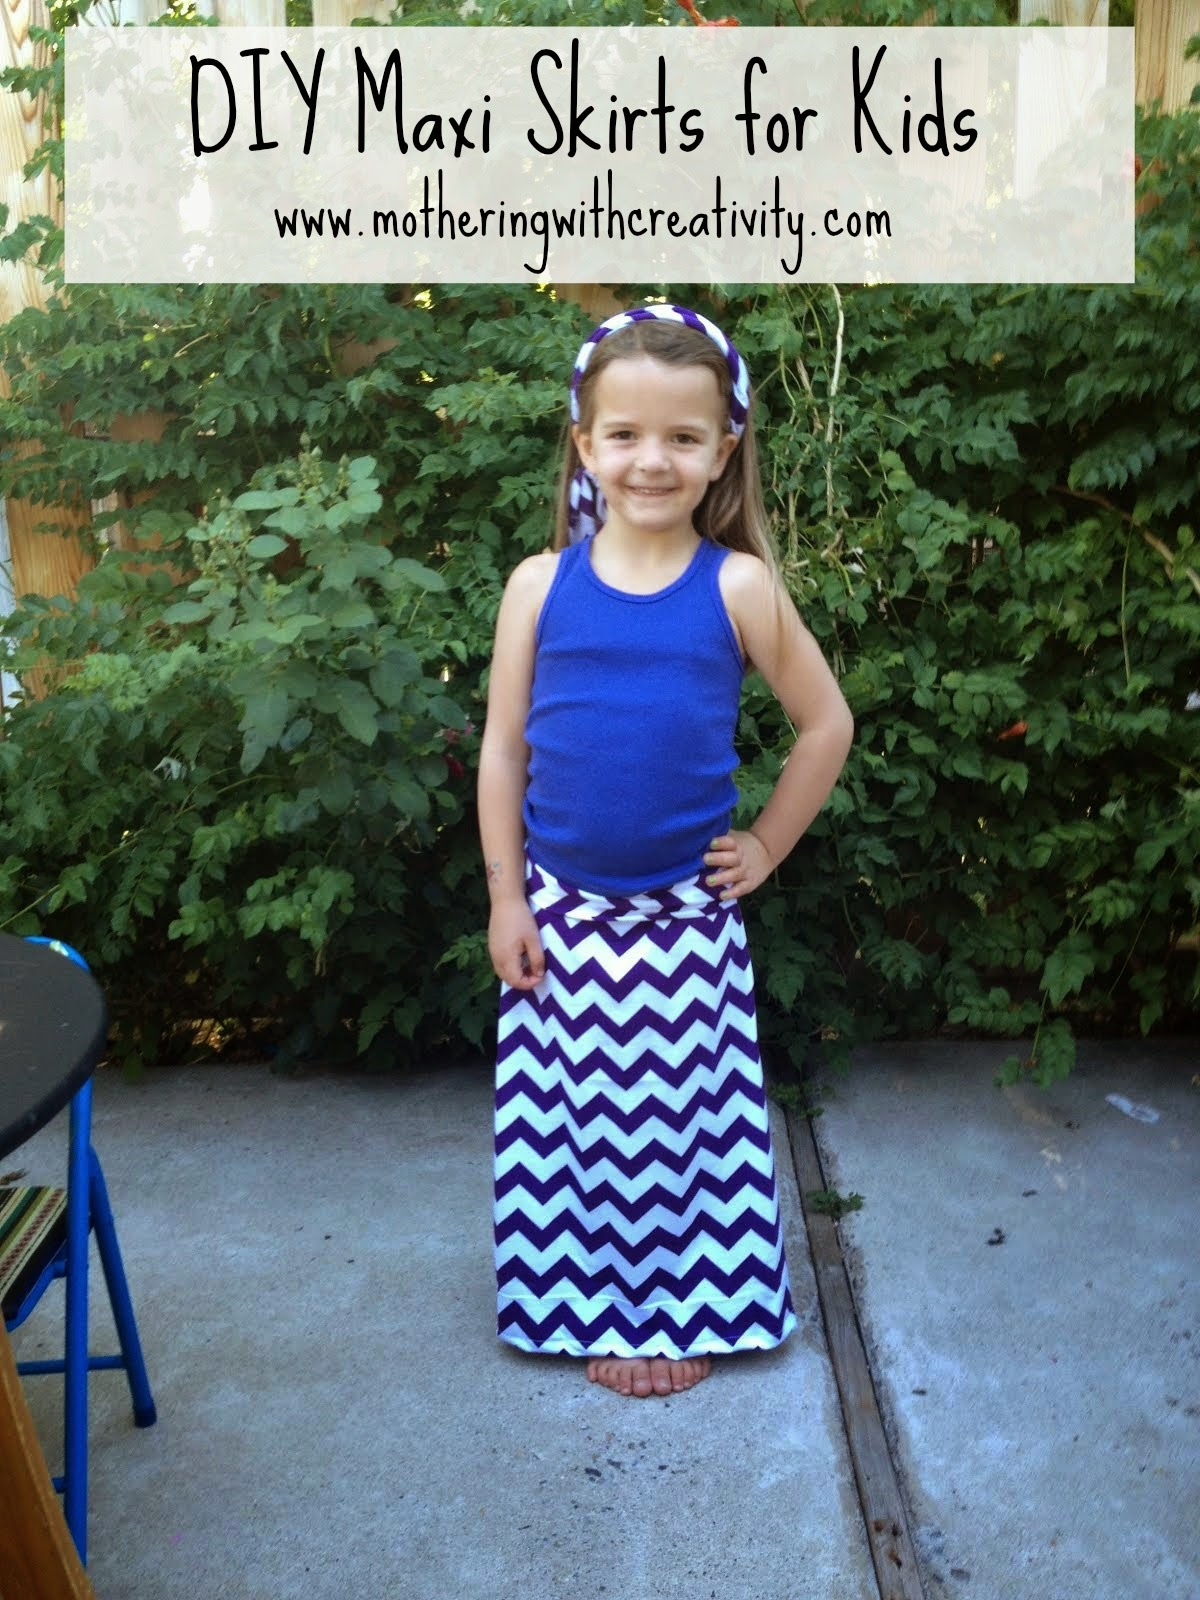 DIY Maxi Skirts for Kids - Mothering With Creativity: DIY Maxi Skirts For Kids